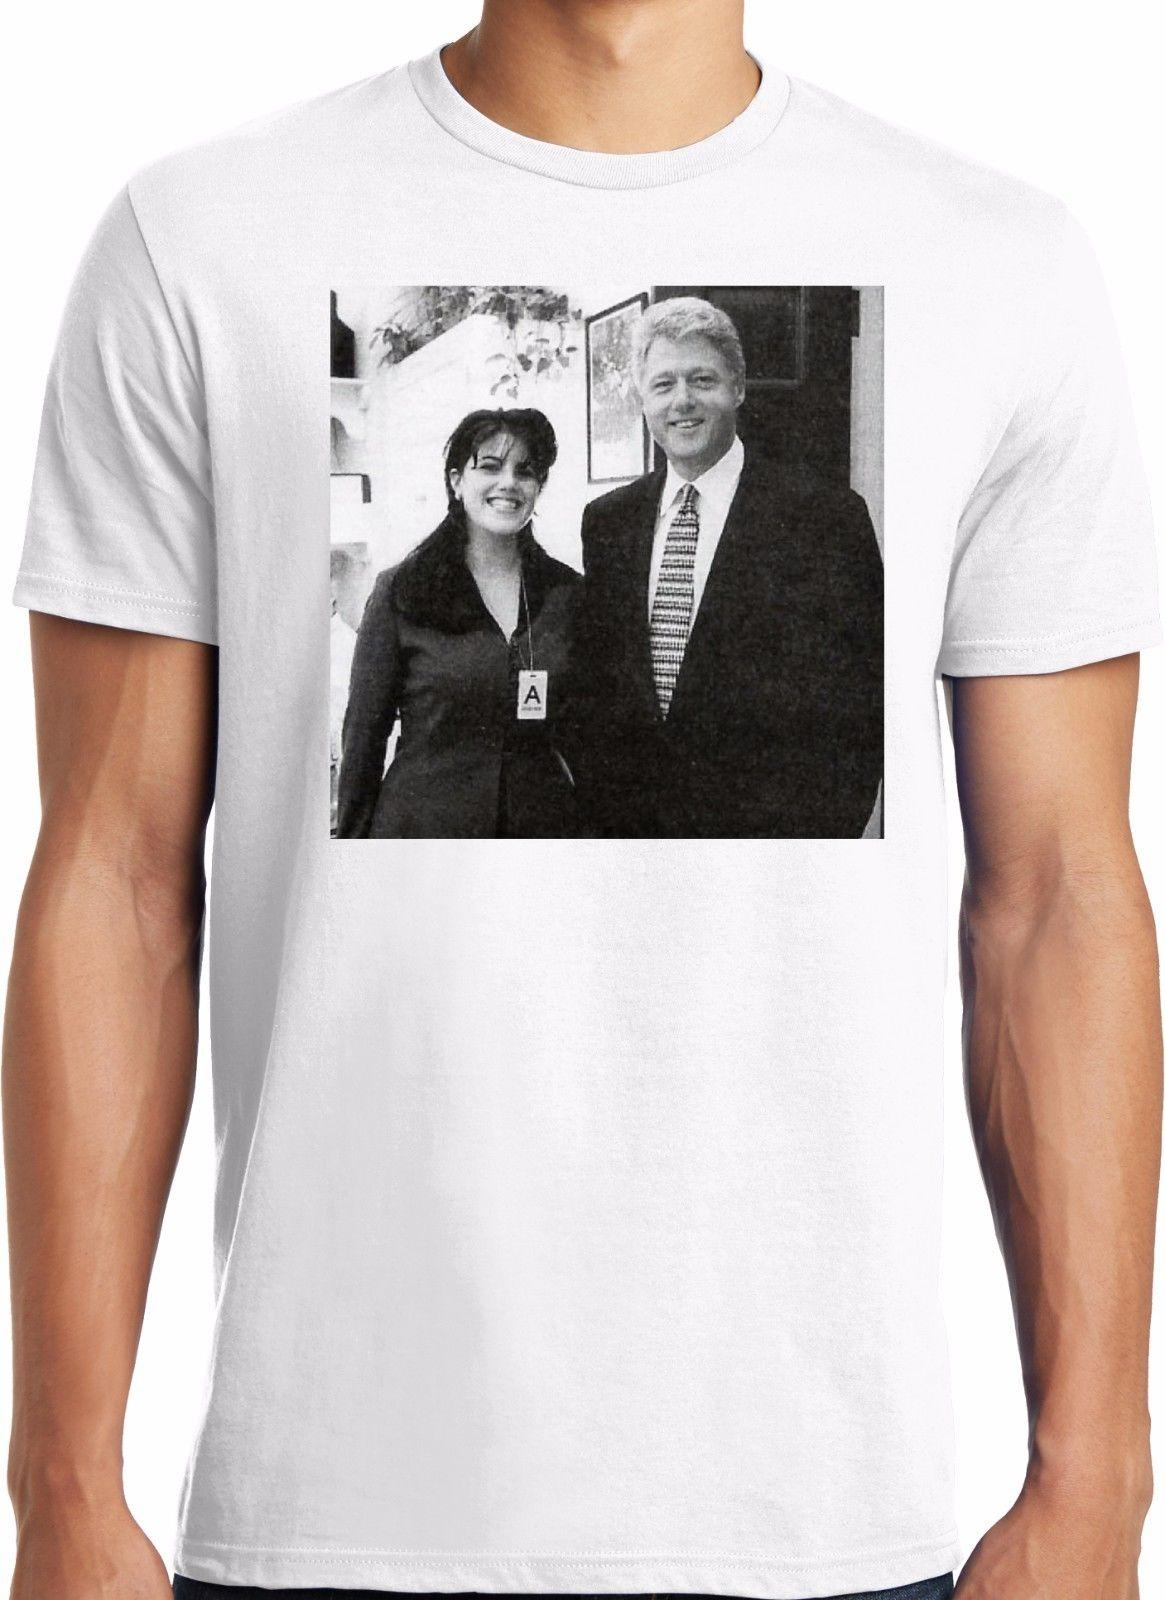 be996d3389 PubliciTeeZ Bill Clinton Monica Lewinsky Adult Photo T Shirt S 3XL Style  Vintage Tees Short Sleeve Funny Shirts With Design Unique T Shirts For Sale  From ...